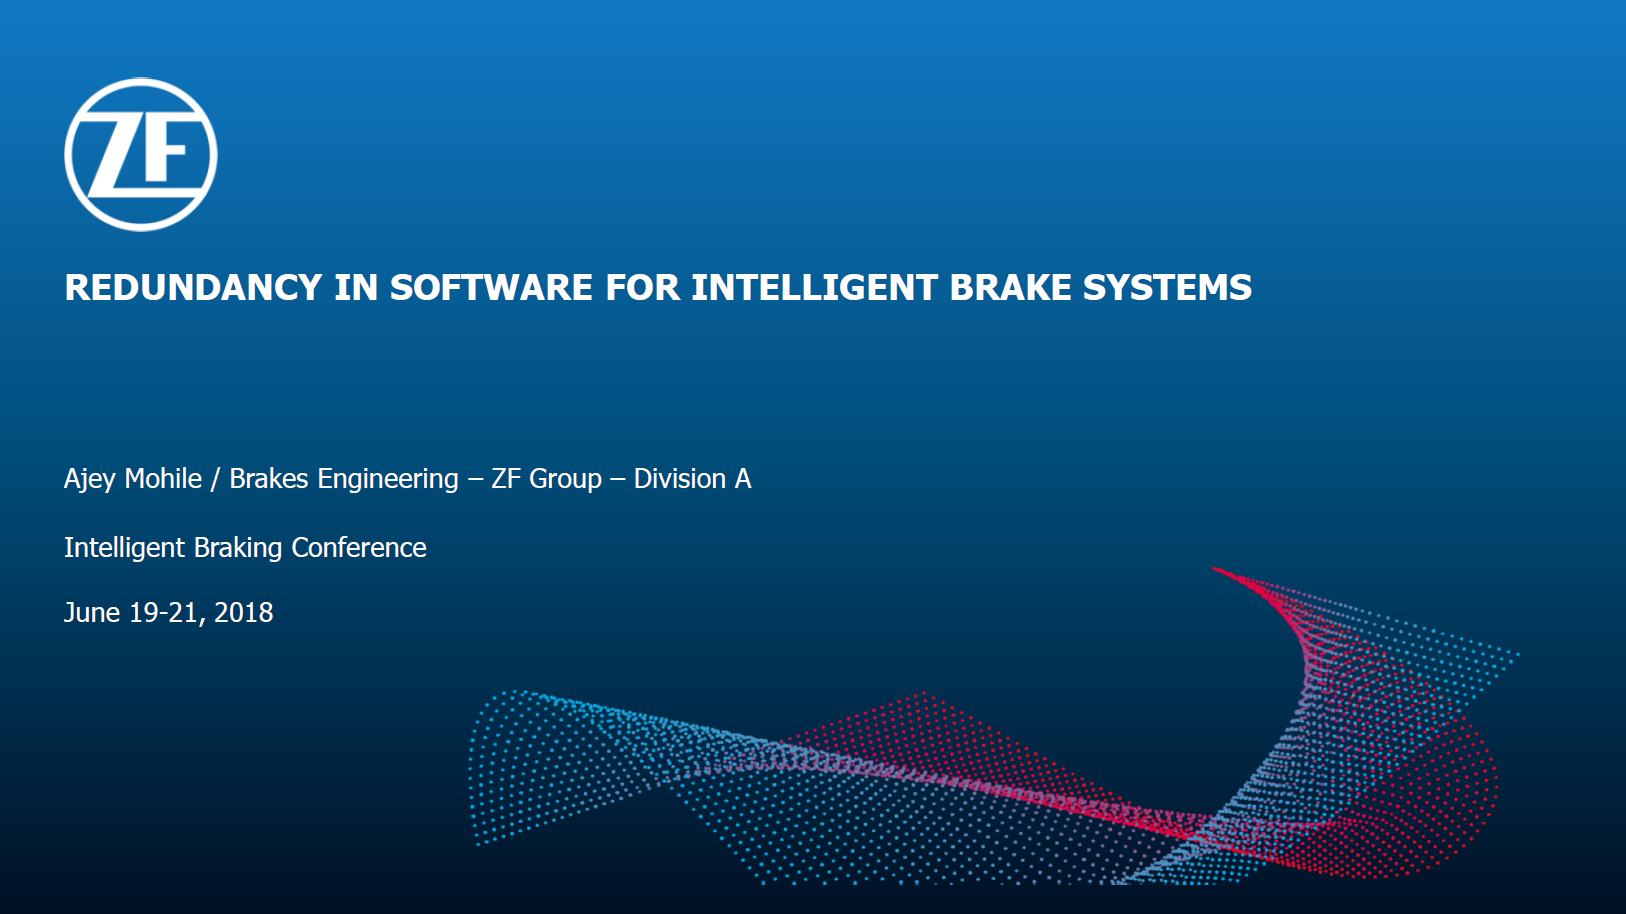 ZF Group Presentation on Redundancies in Intelligent (Mechatronic) Brake Systems